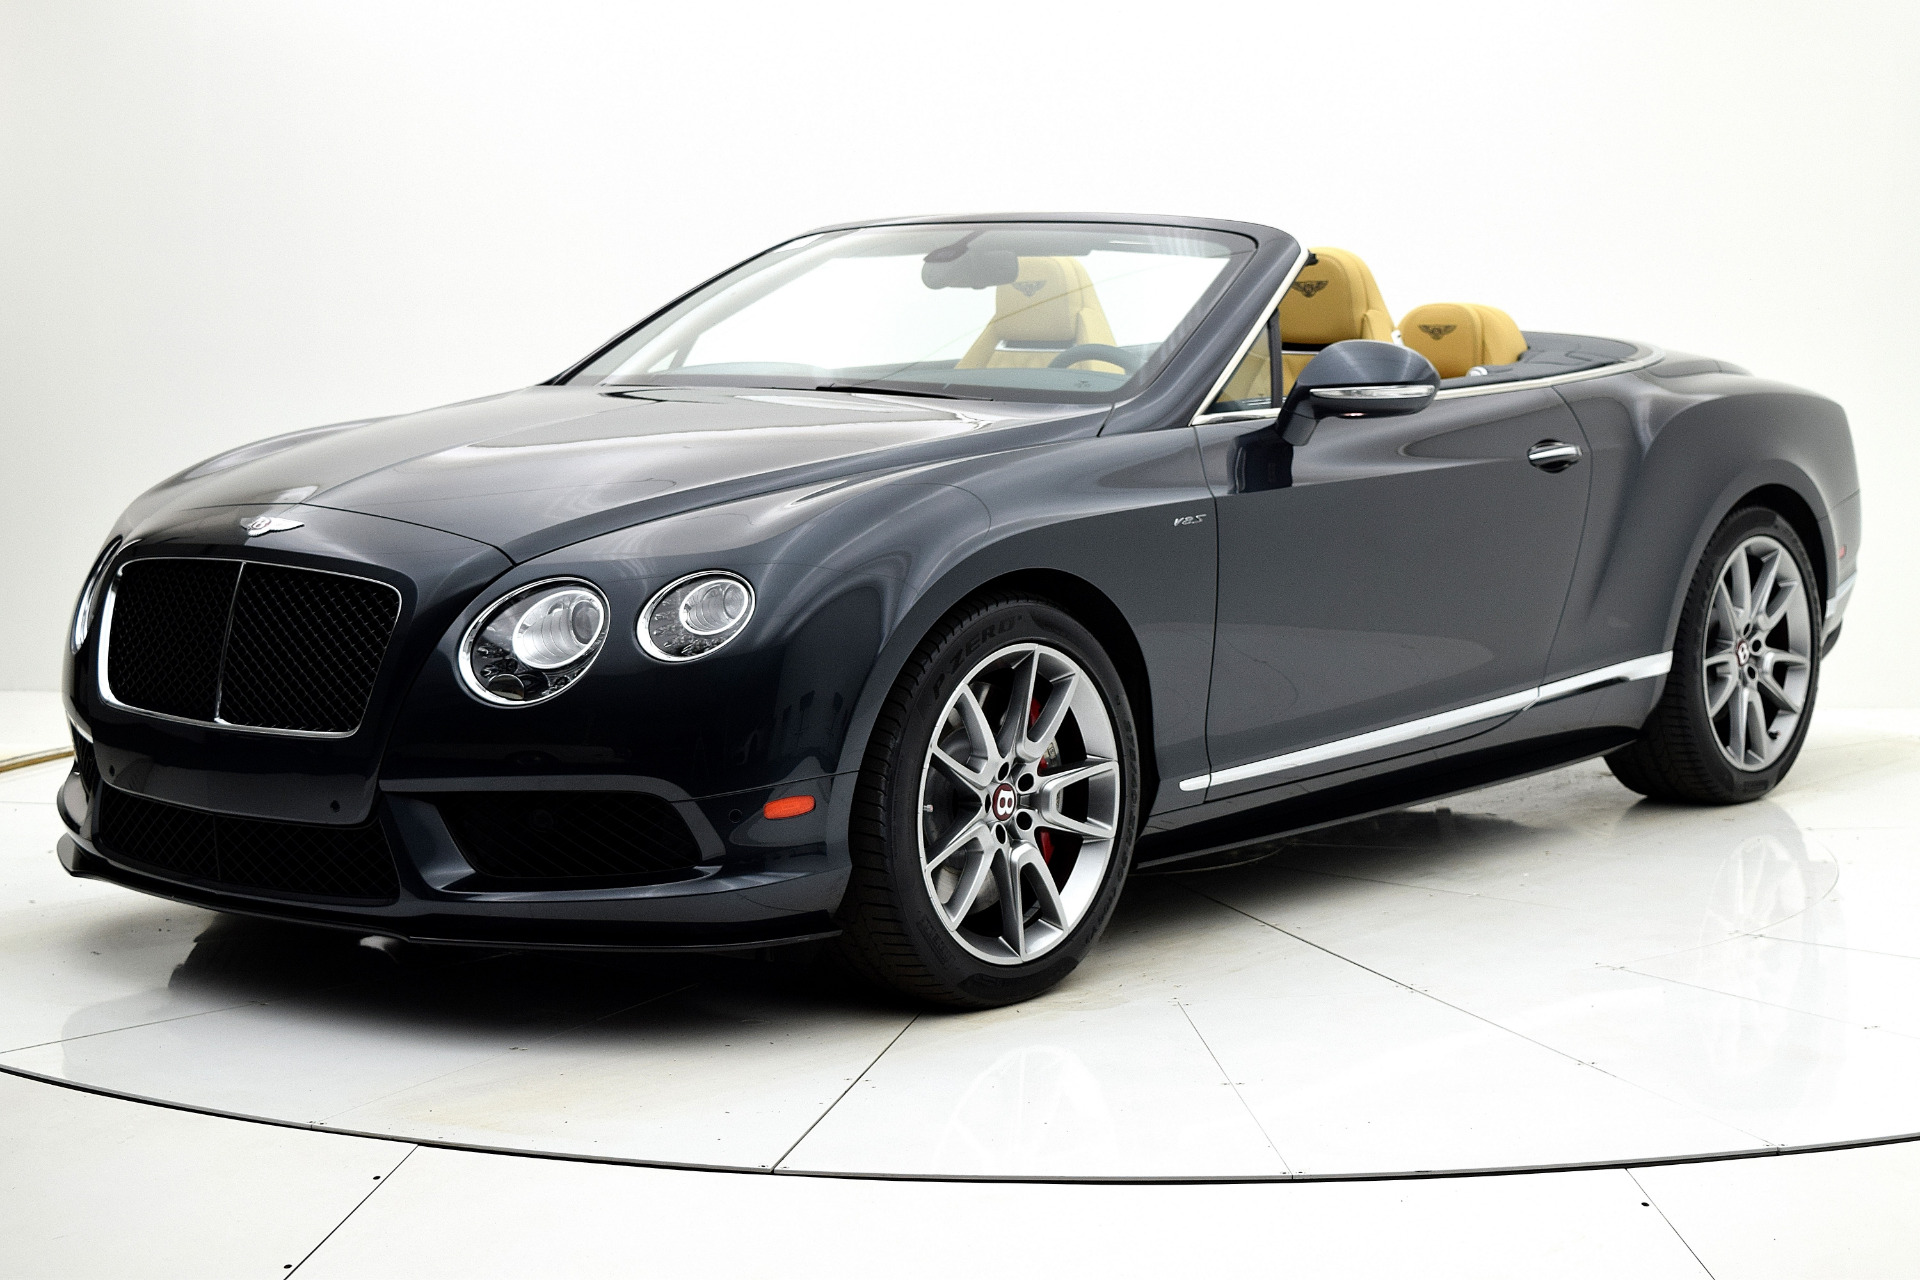 Used 2015 Bentley Continental GT V8 S Convertible for sale Sold at F.C. Kerbeck Aston Martin in Palmyra NJ 08065 2